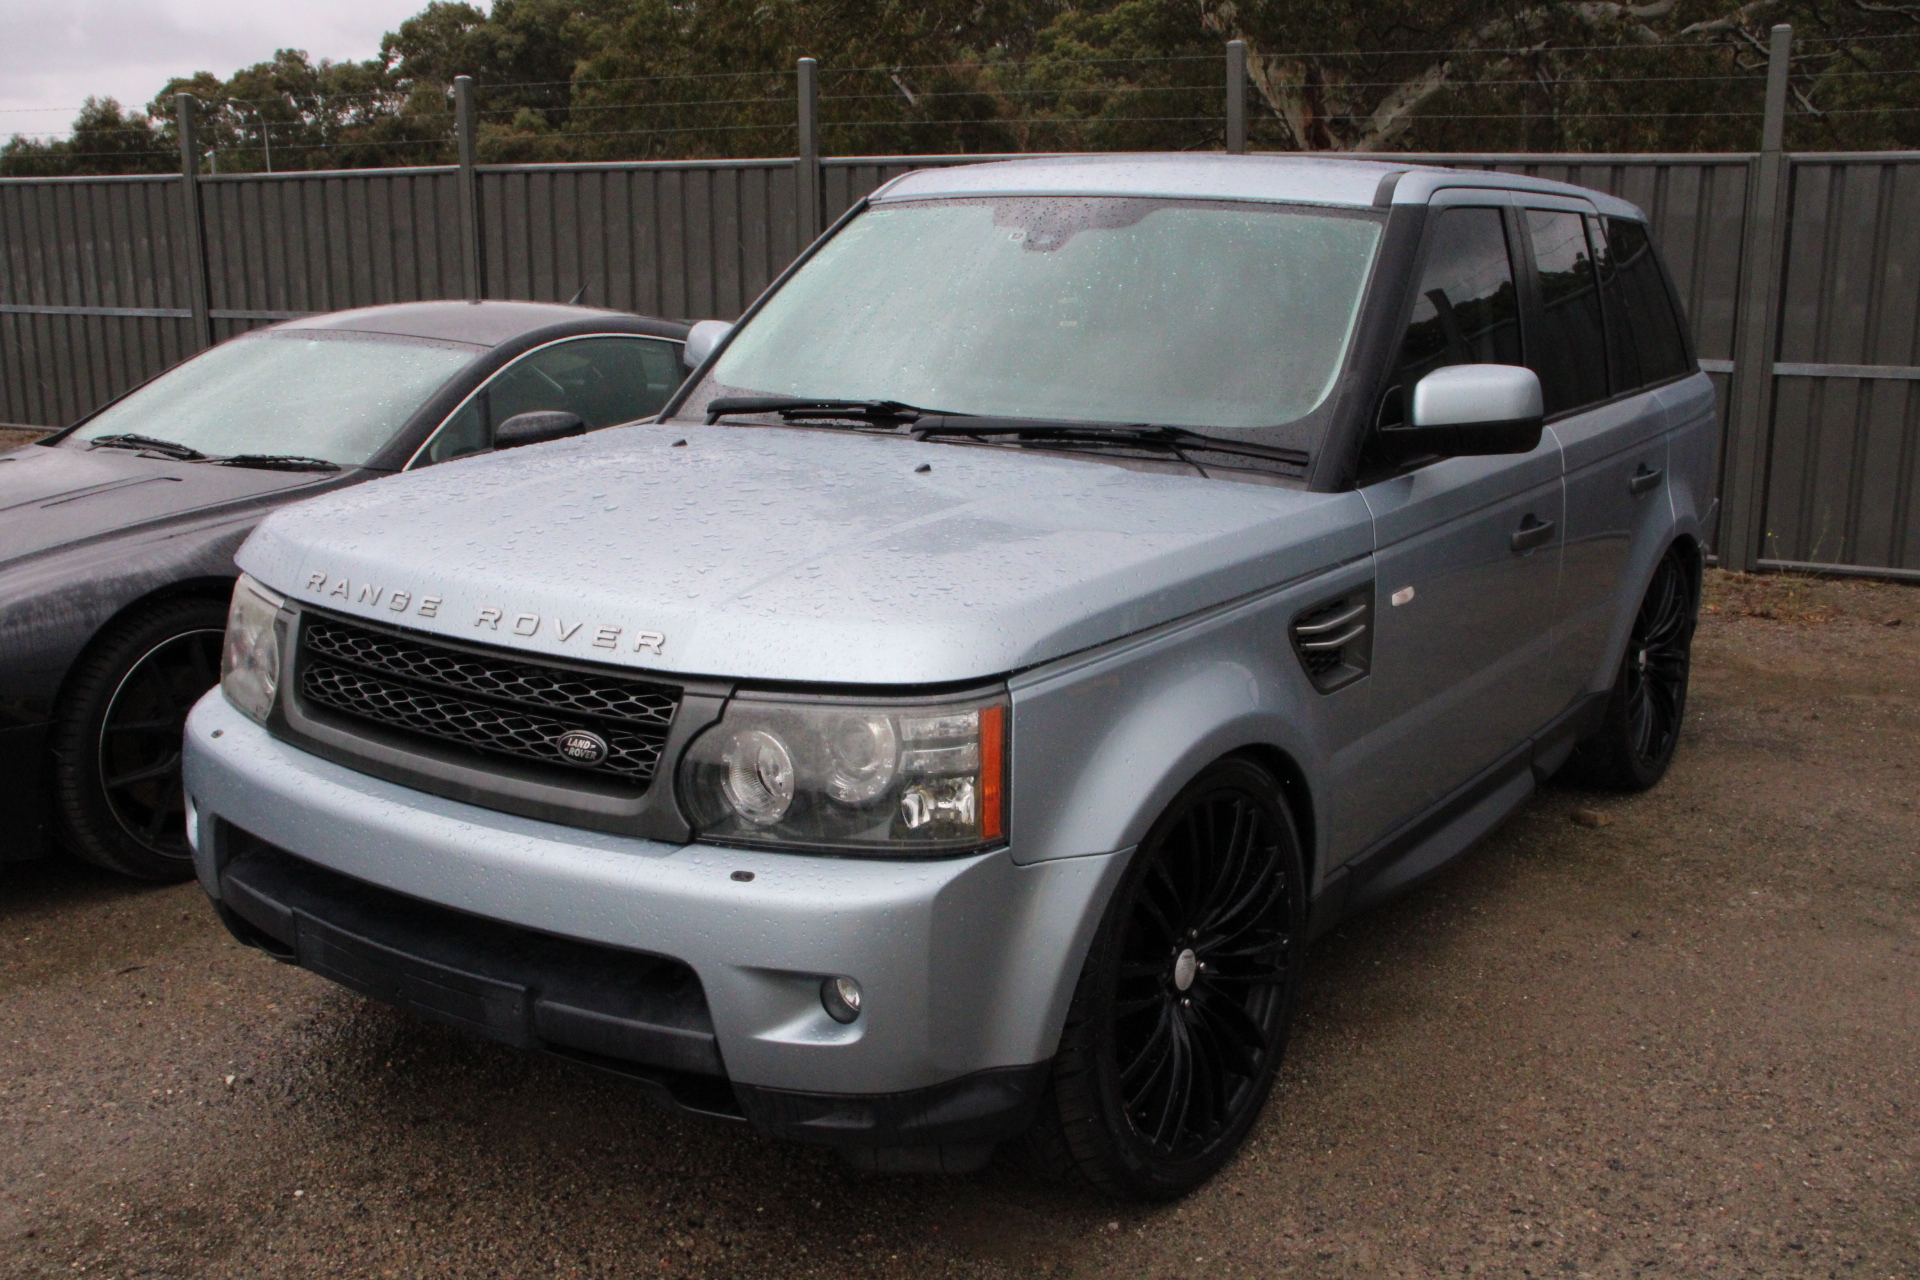 2011 Land Rover Range Rover Sport 3.0 TDV6 Turbo Diesel Automatic Wagon